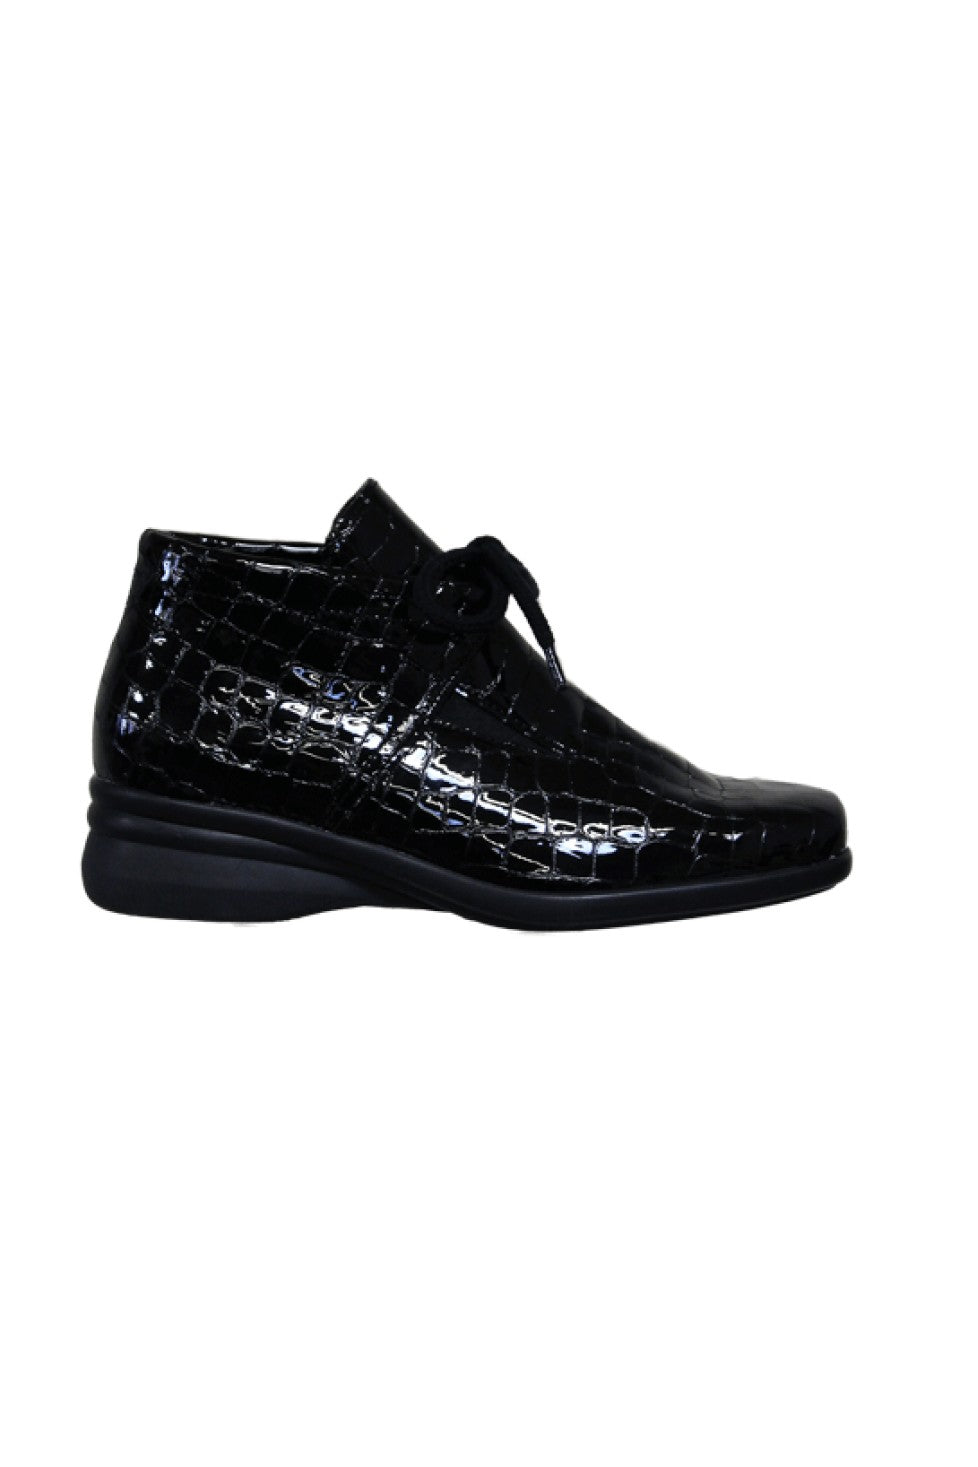 The Hirica Genna Boot Croc Black Style and Grace